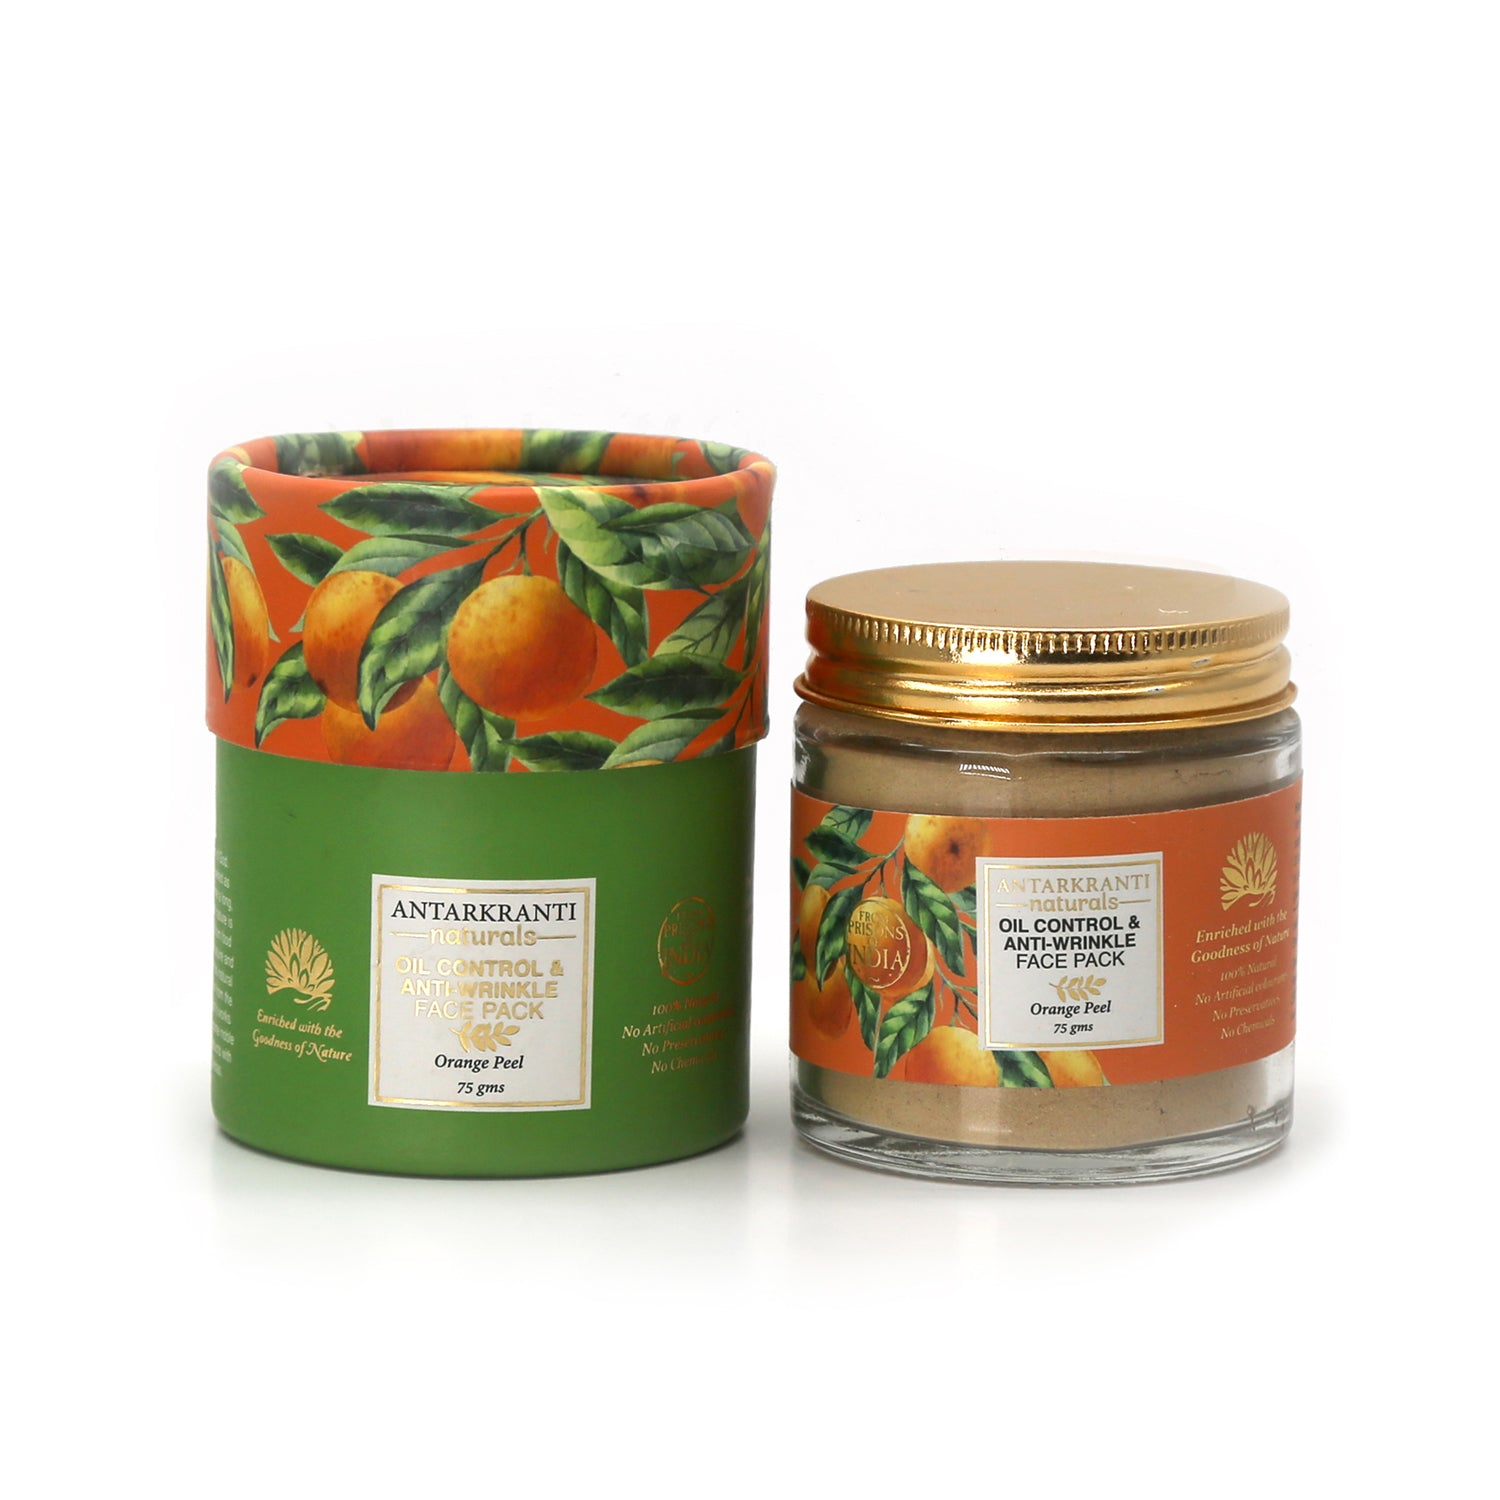 Orange Peel Oil Control & Anti-Wrinkle Face Pack